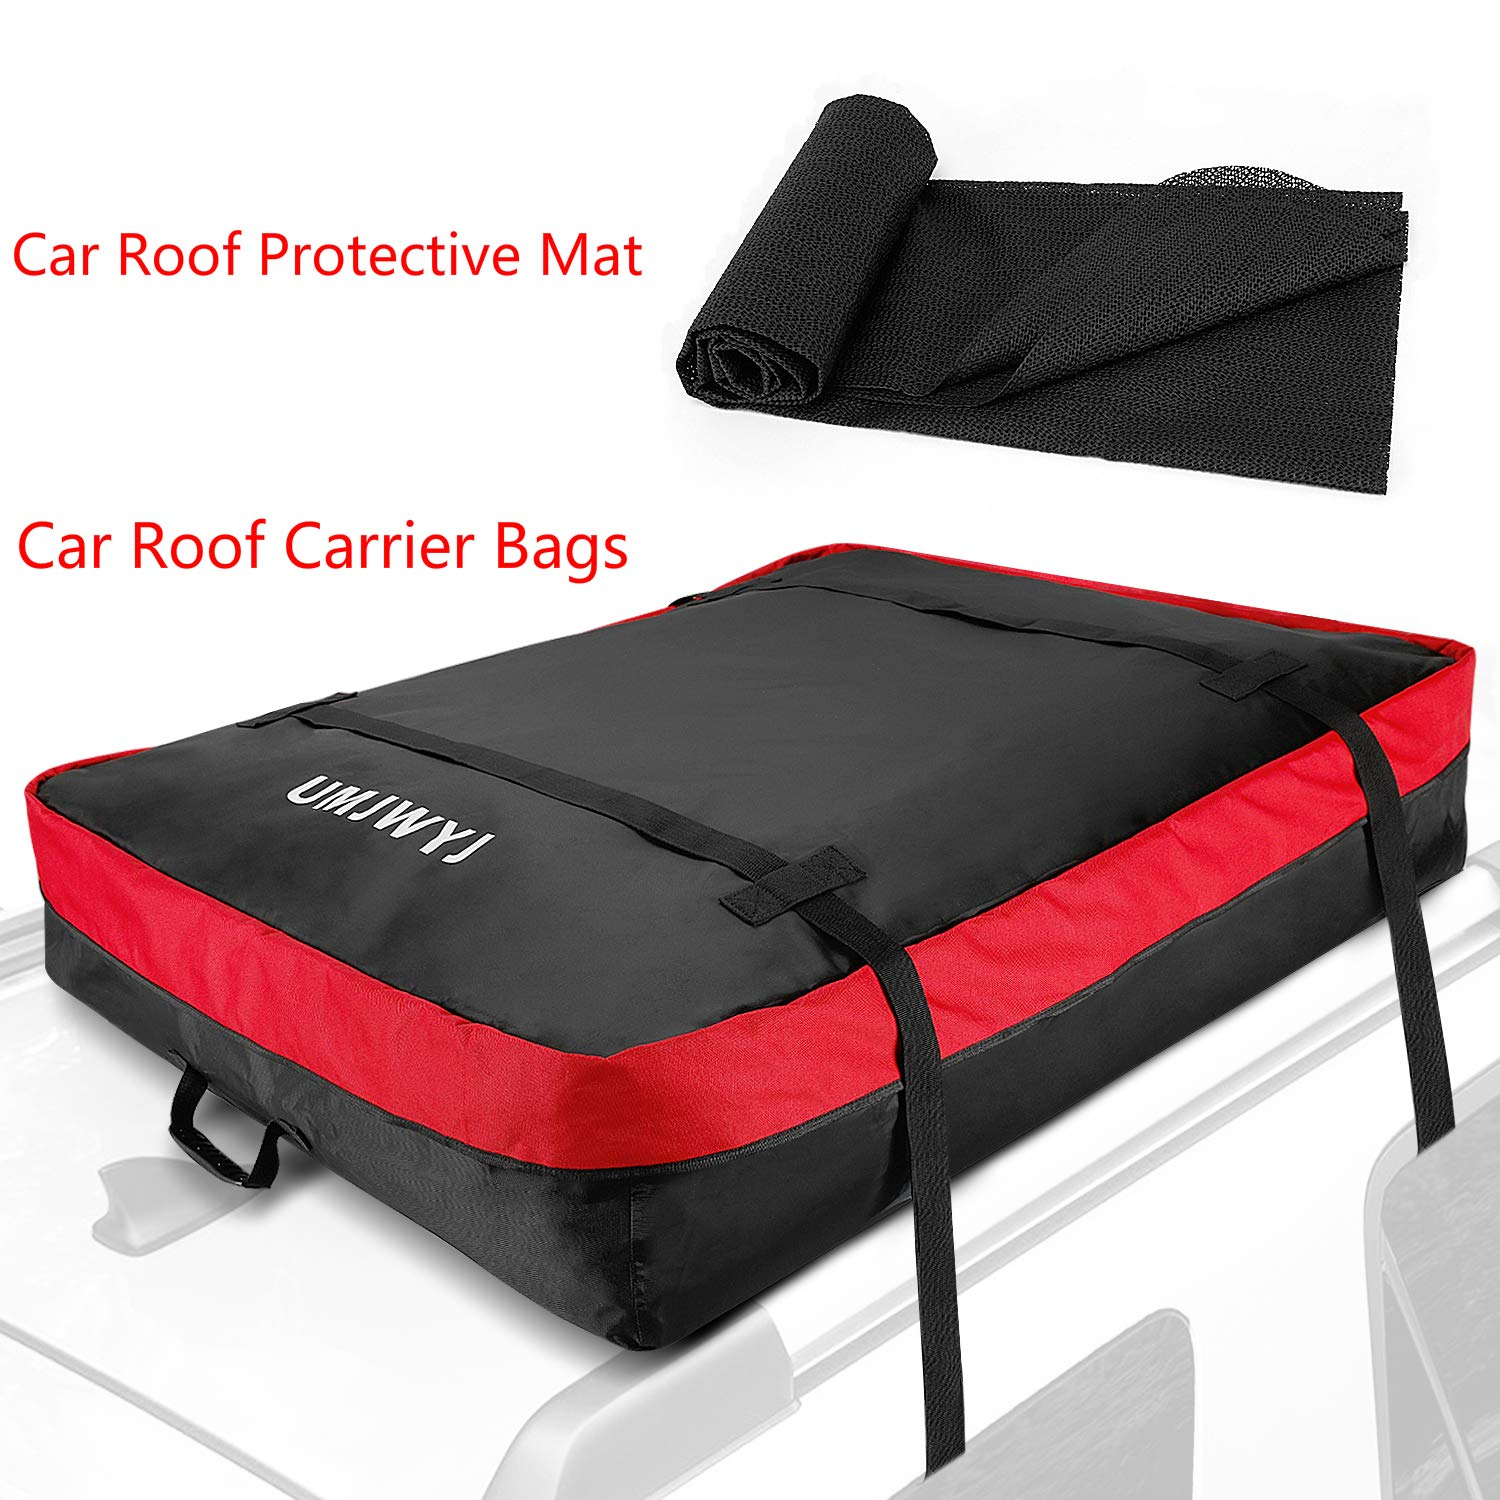 Non Slip Roof Mat /& Storage Bag UMJWYJ Car Roof Box Waterproof Cargo Bag,420D Nylon Strong Car Roof Bag 10 Cubic Feet for Any Car Van or SUV 100/% Waterproof Roof Top Cargo Bag No Rack Needed